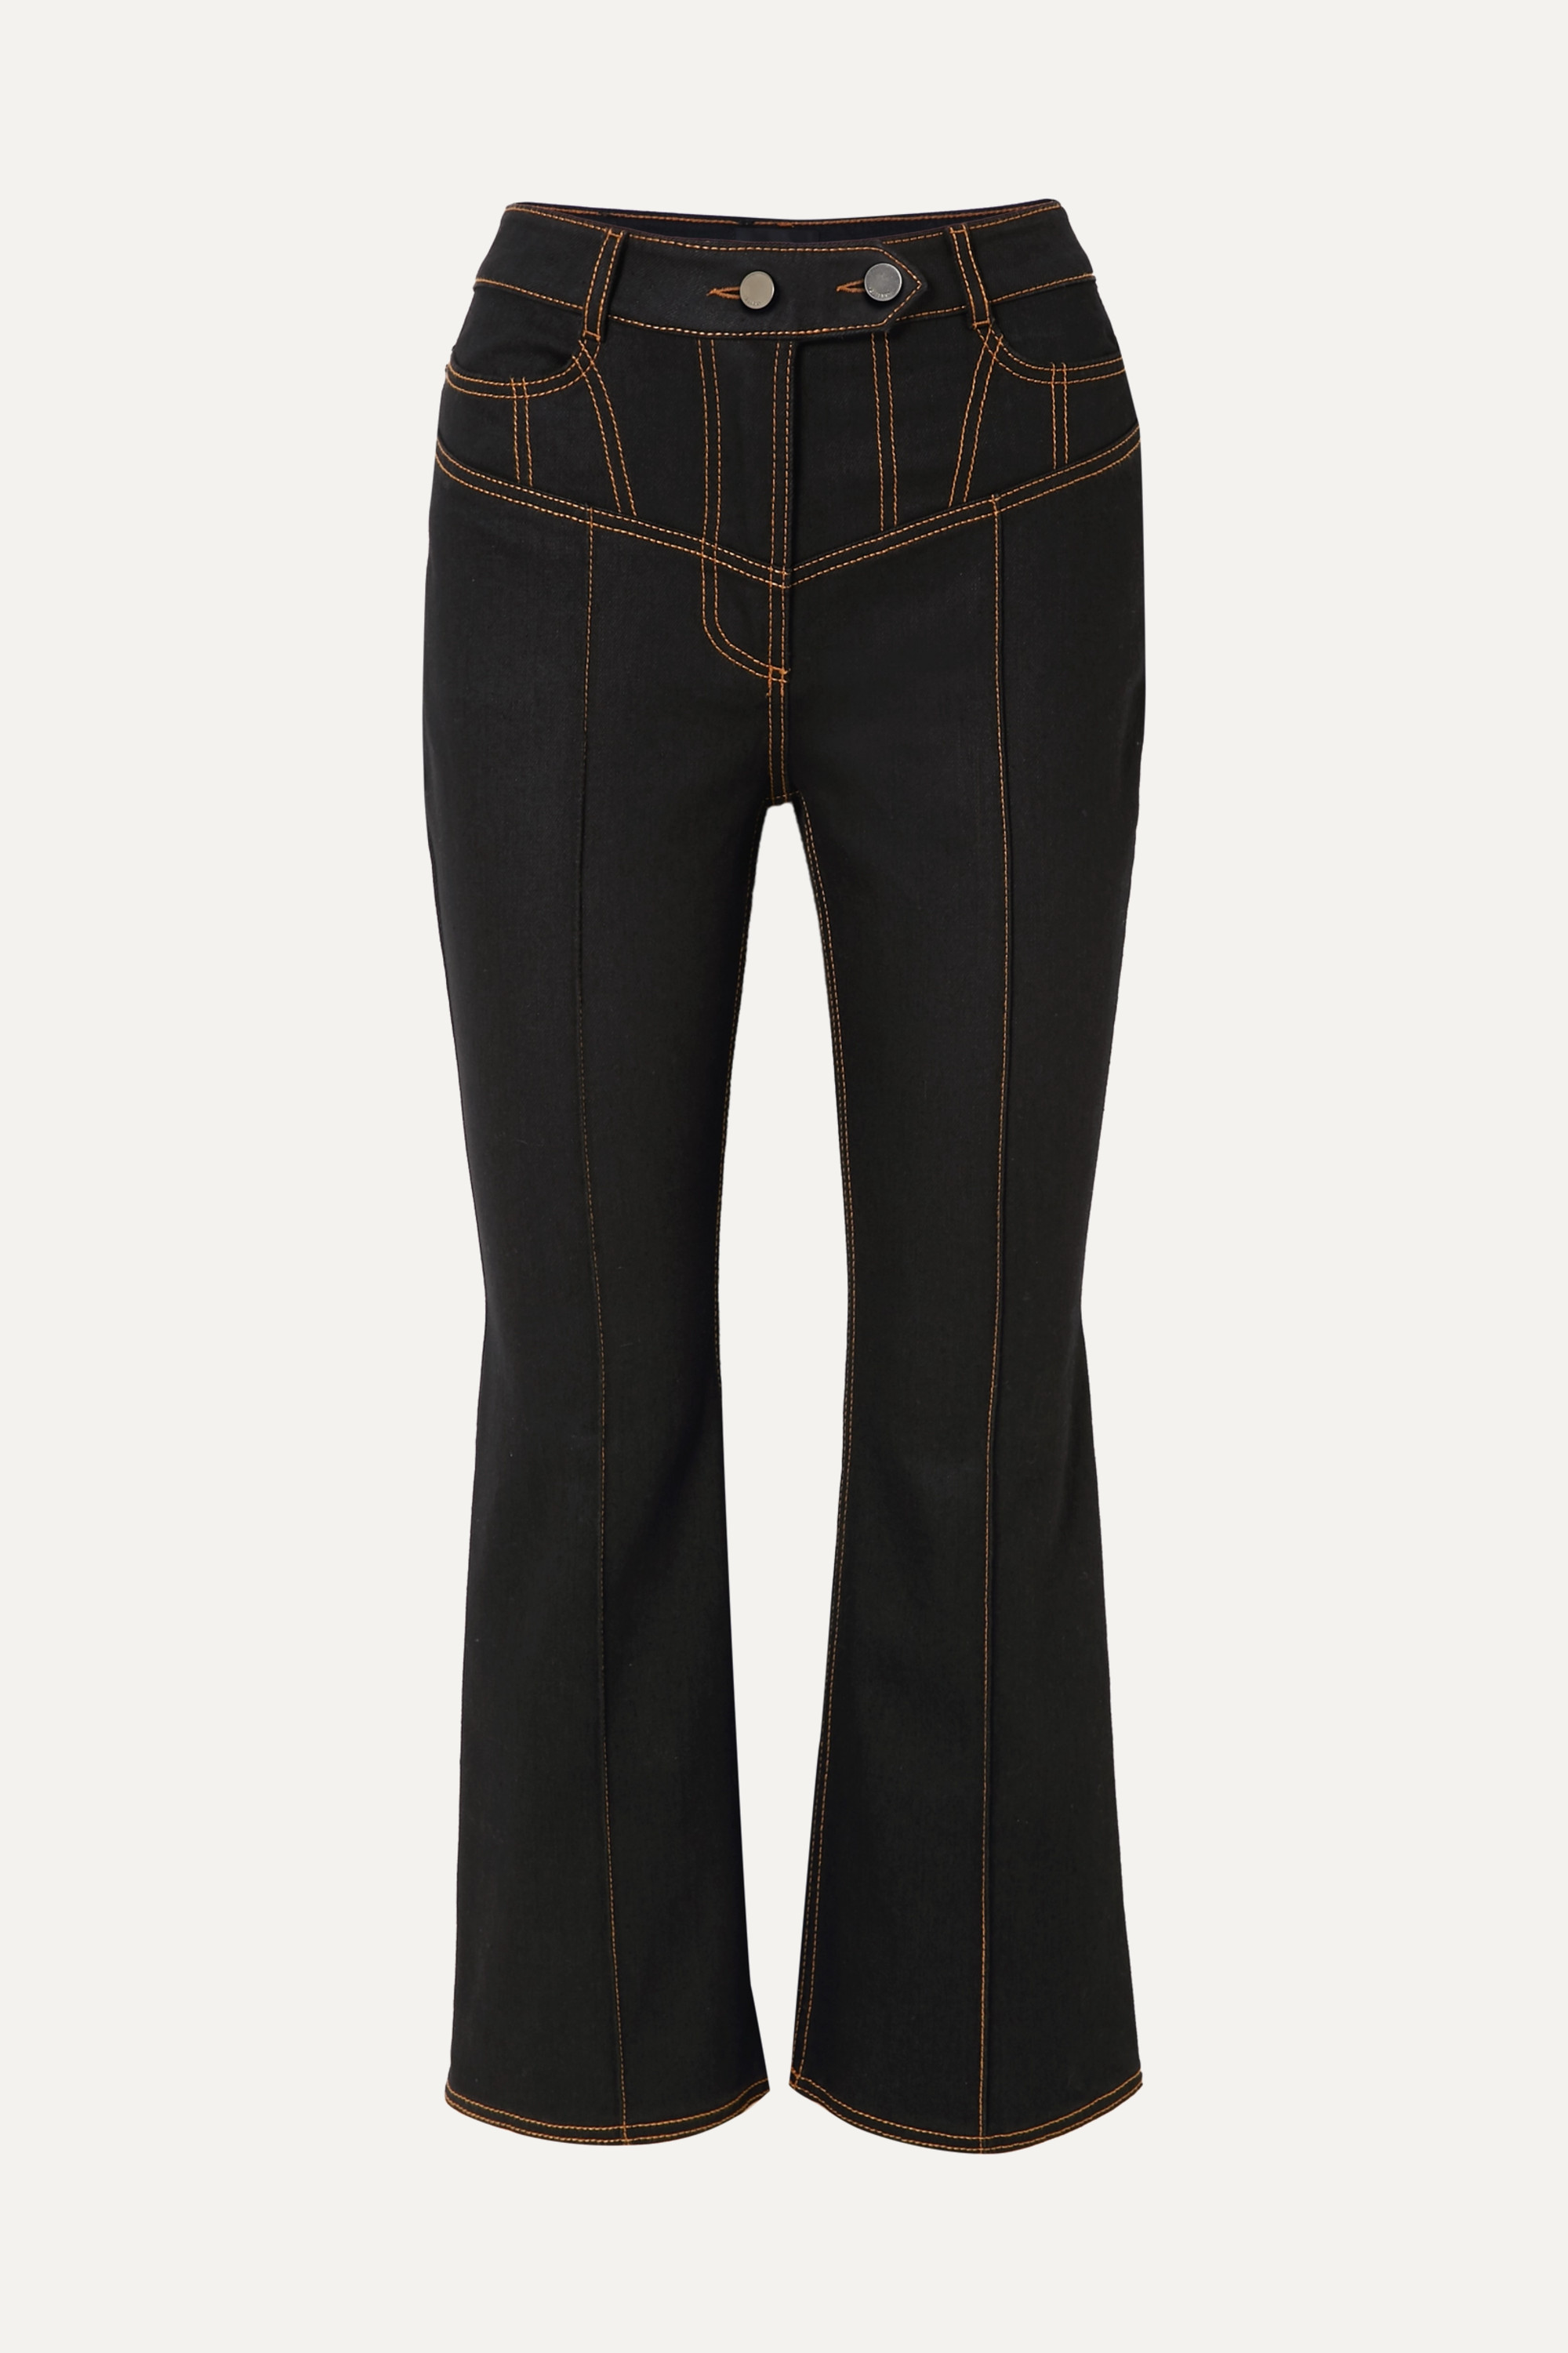 Ellery Presentism high-rise flared jeans